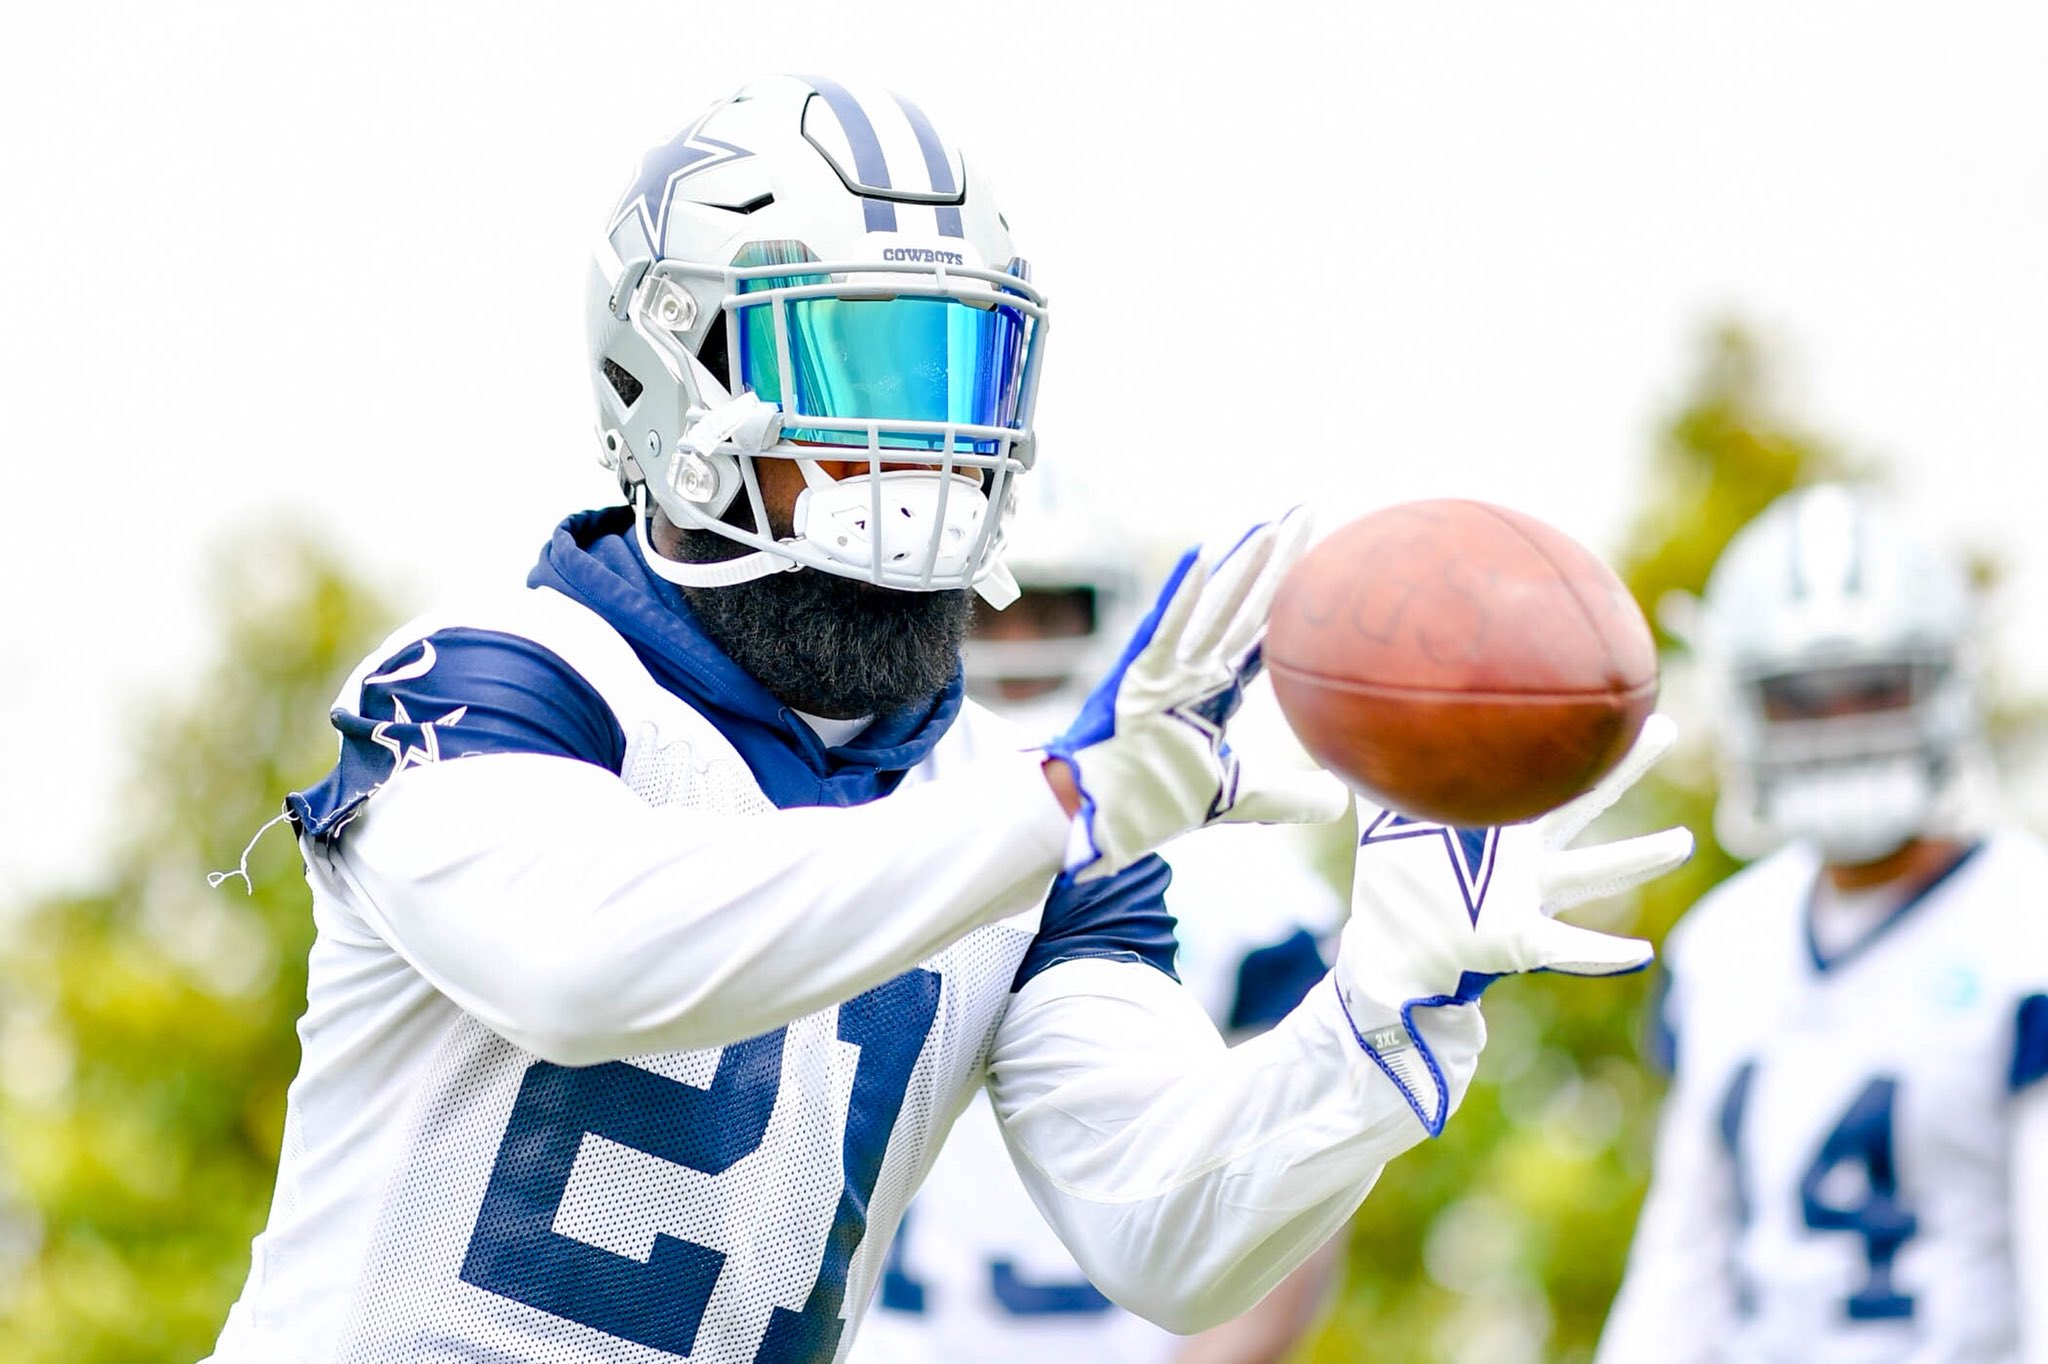 Enjoy an offseason highlight of the #DallasCowboys RBs. ��  Full gallery �� https://t.co/toT78rmloC https://t.co/nhouOOejgd